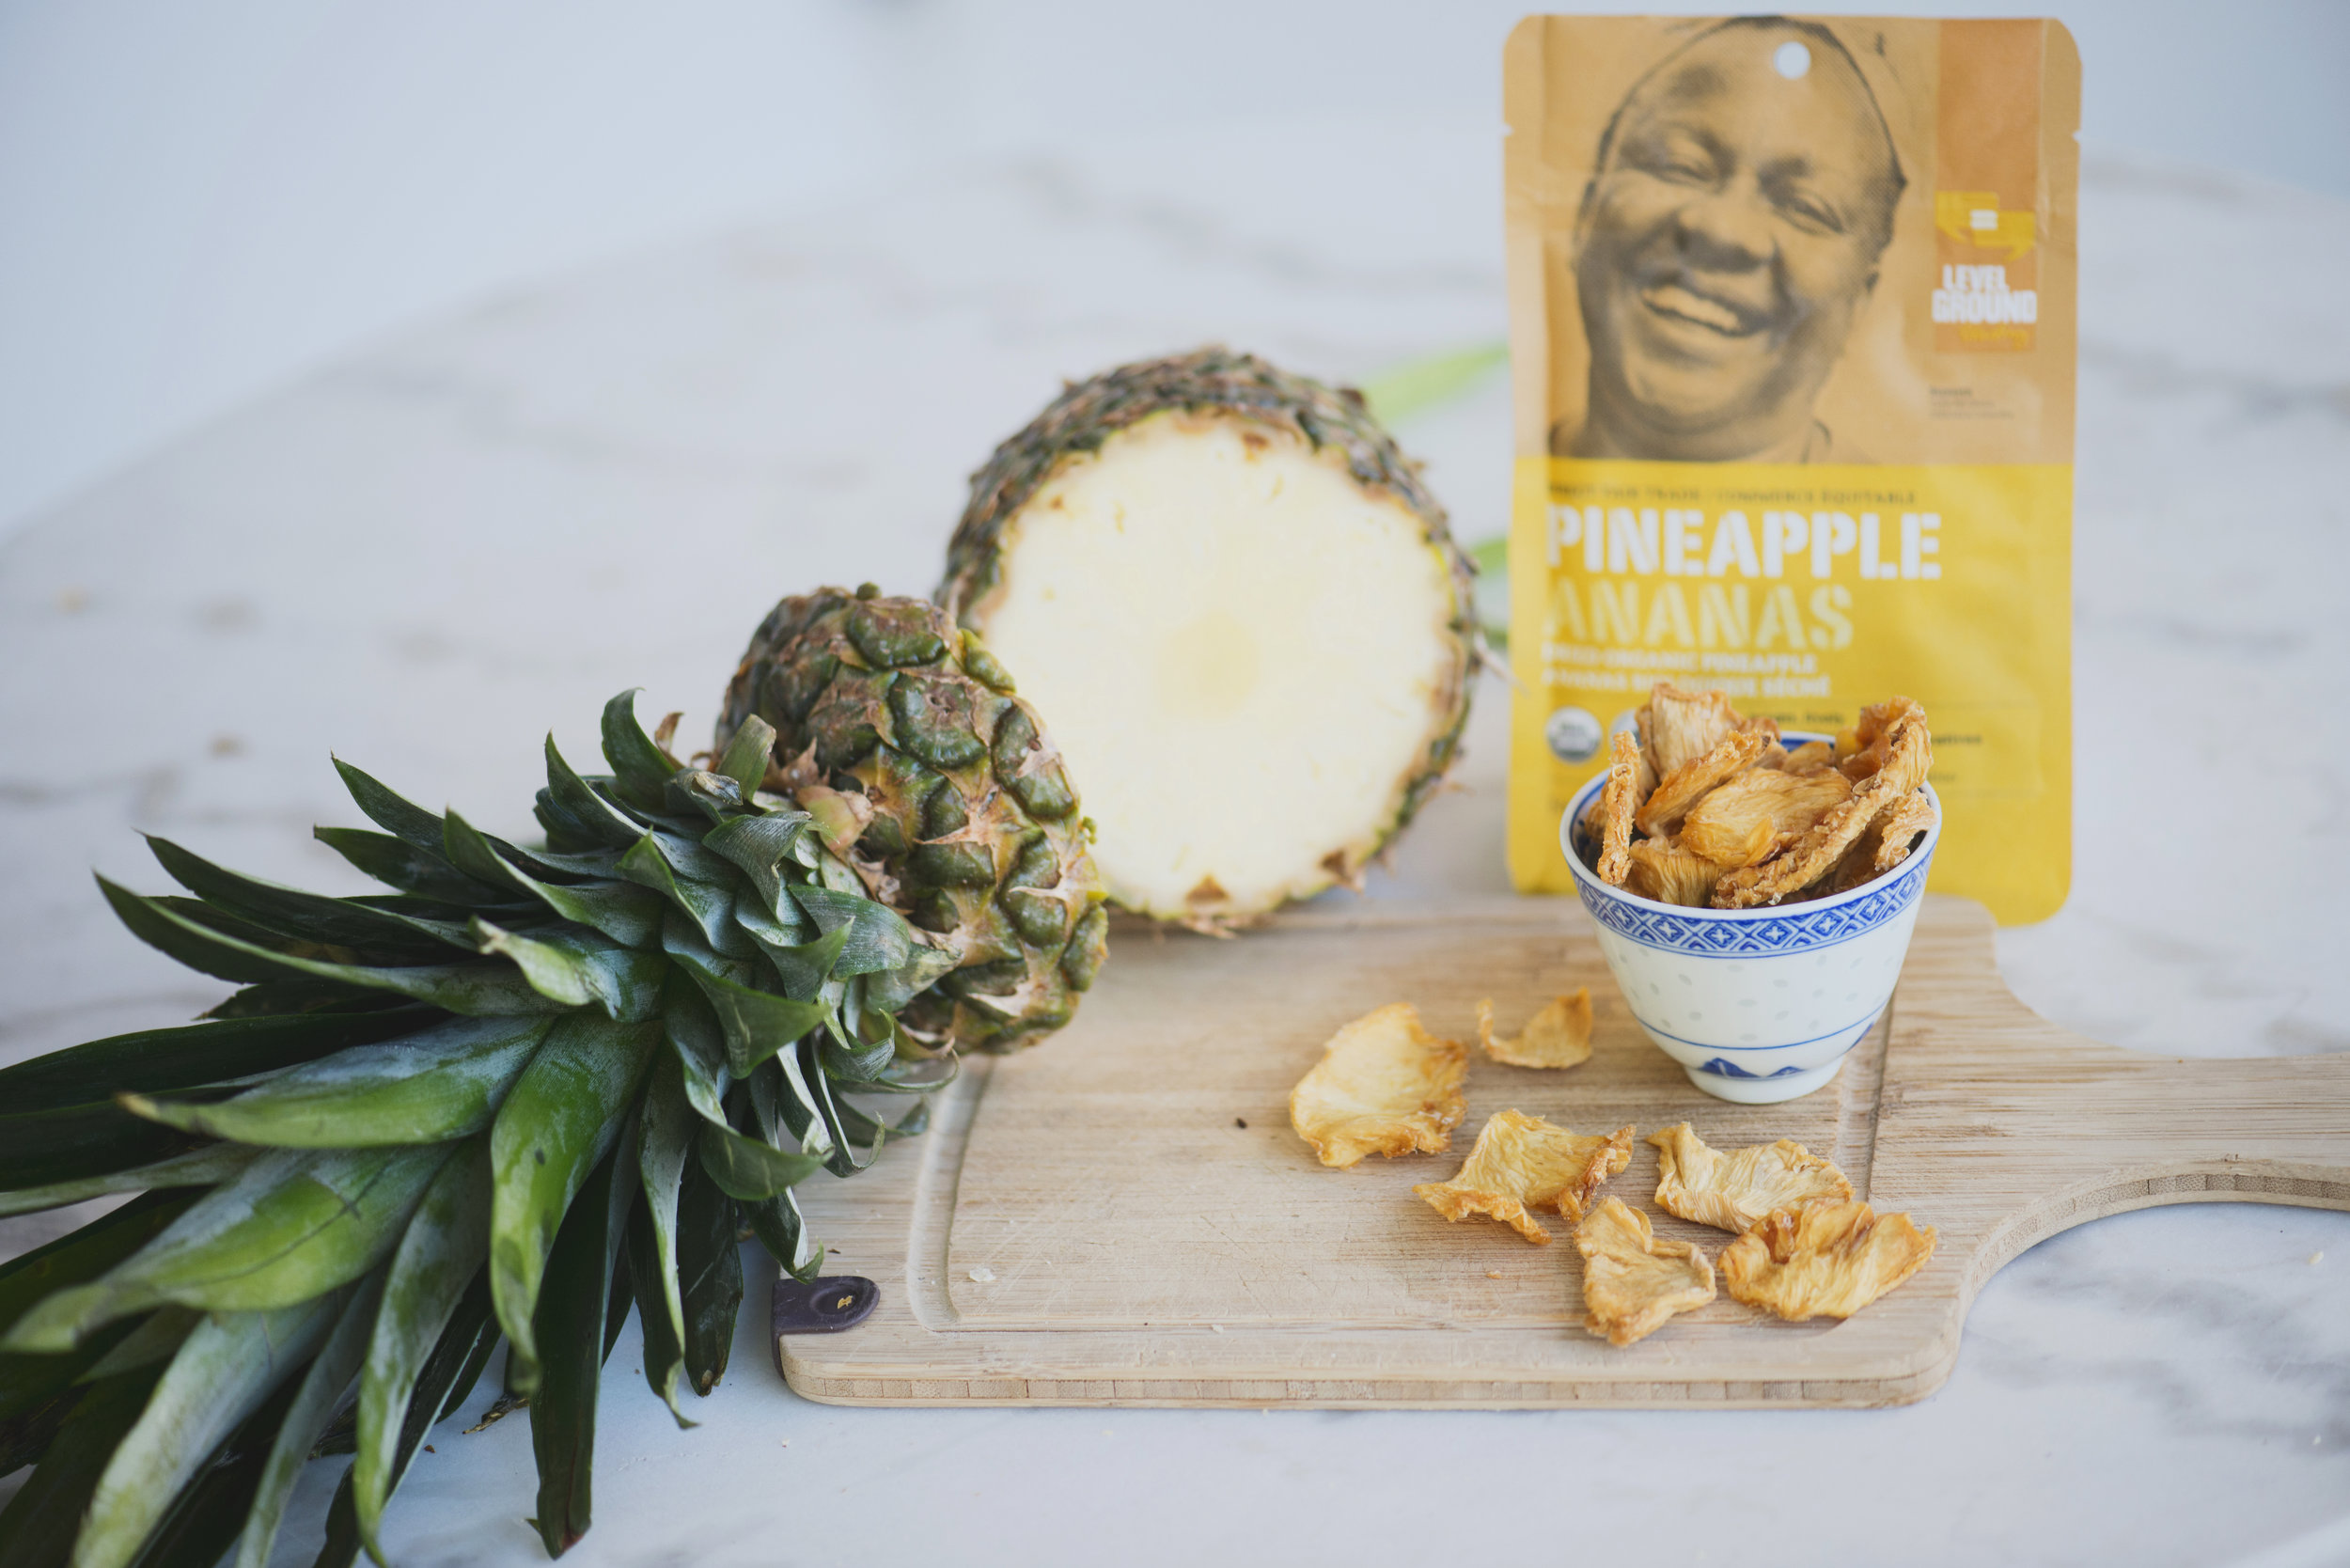 Level Ground pineapple package